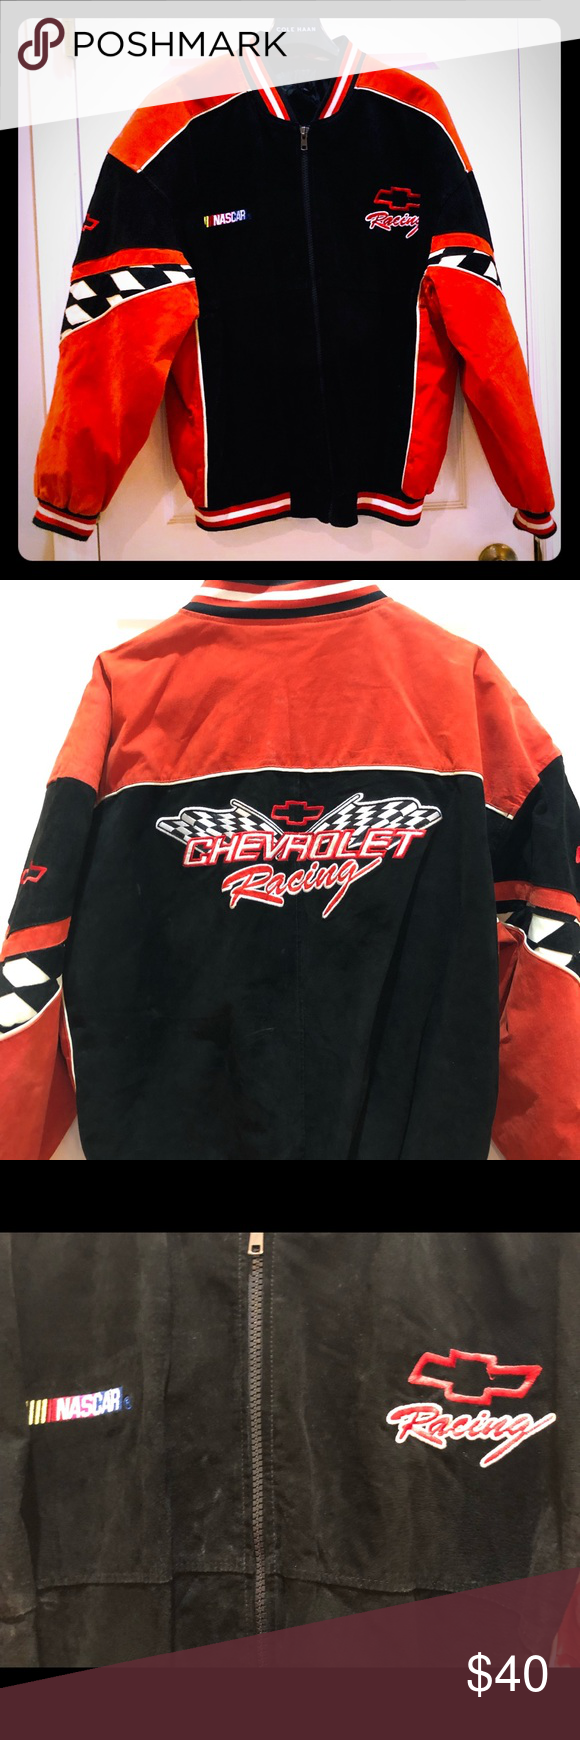 NASCAR Chevy Racing Leather Bomber Large Vibrant colors on this vintage NASCAR r...-#bomber